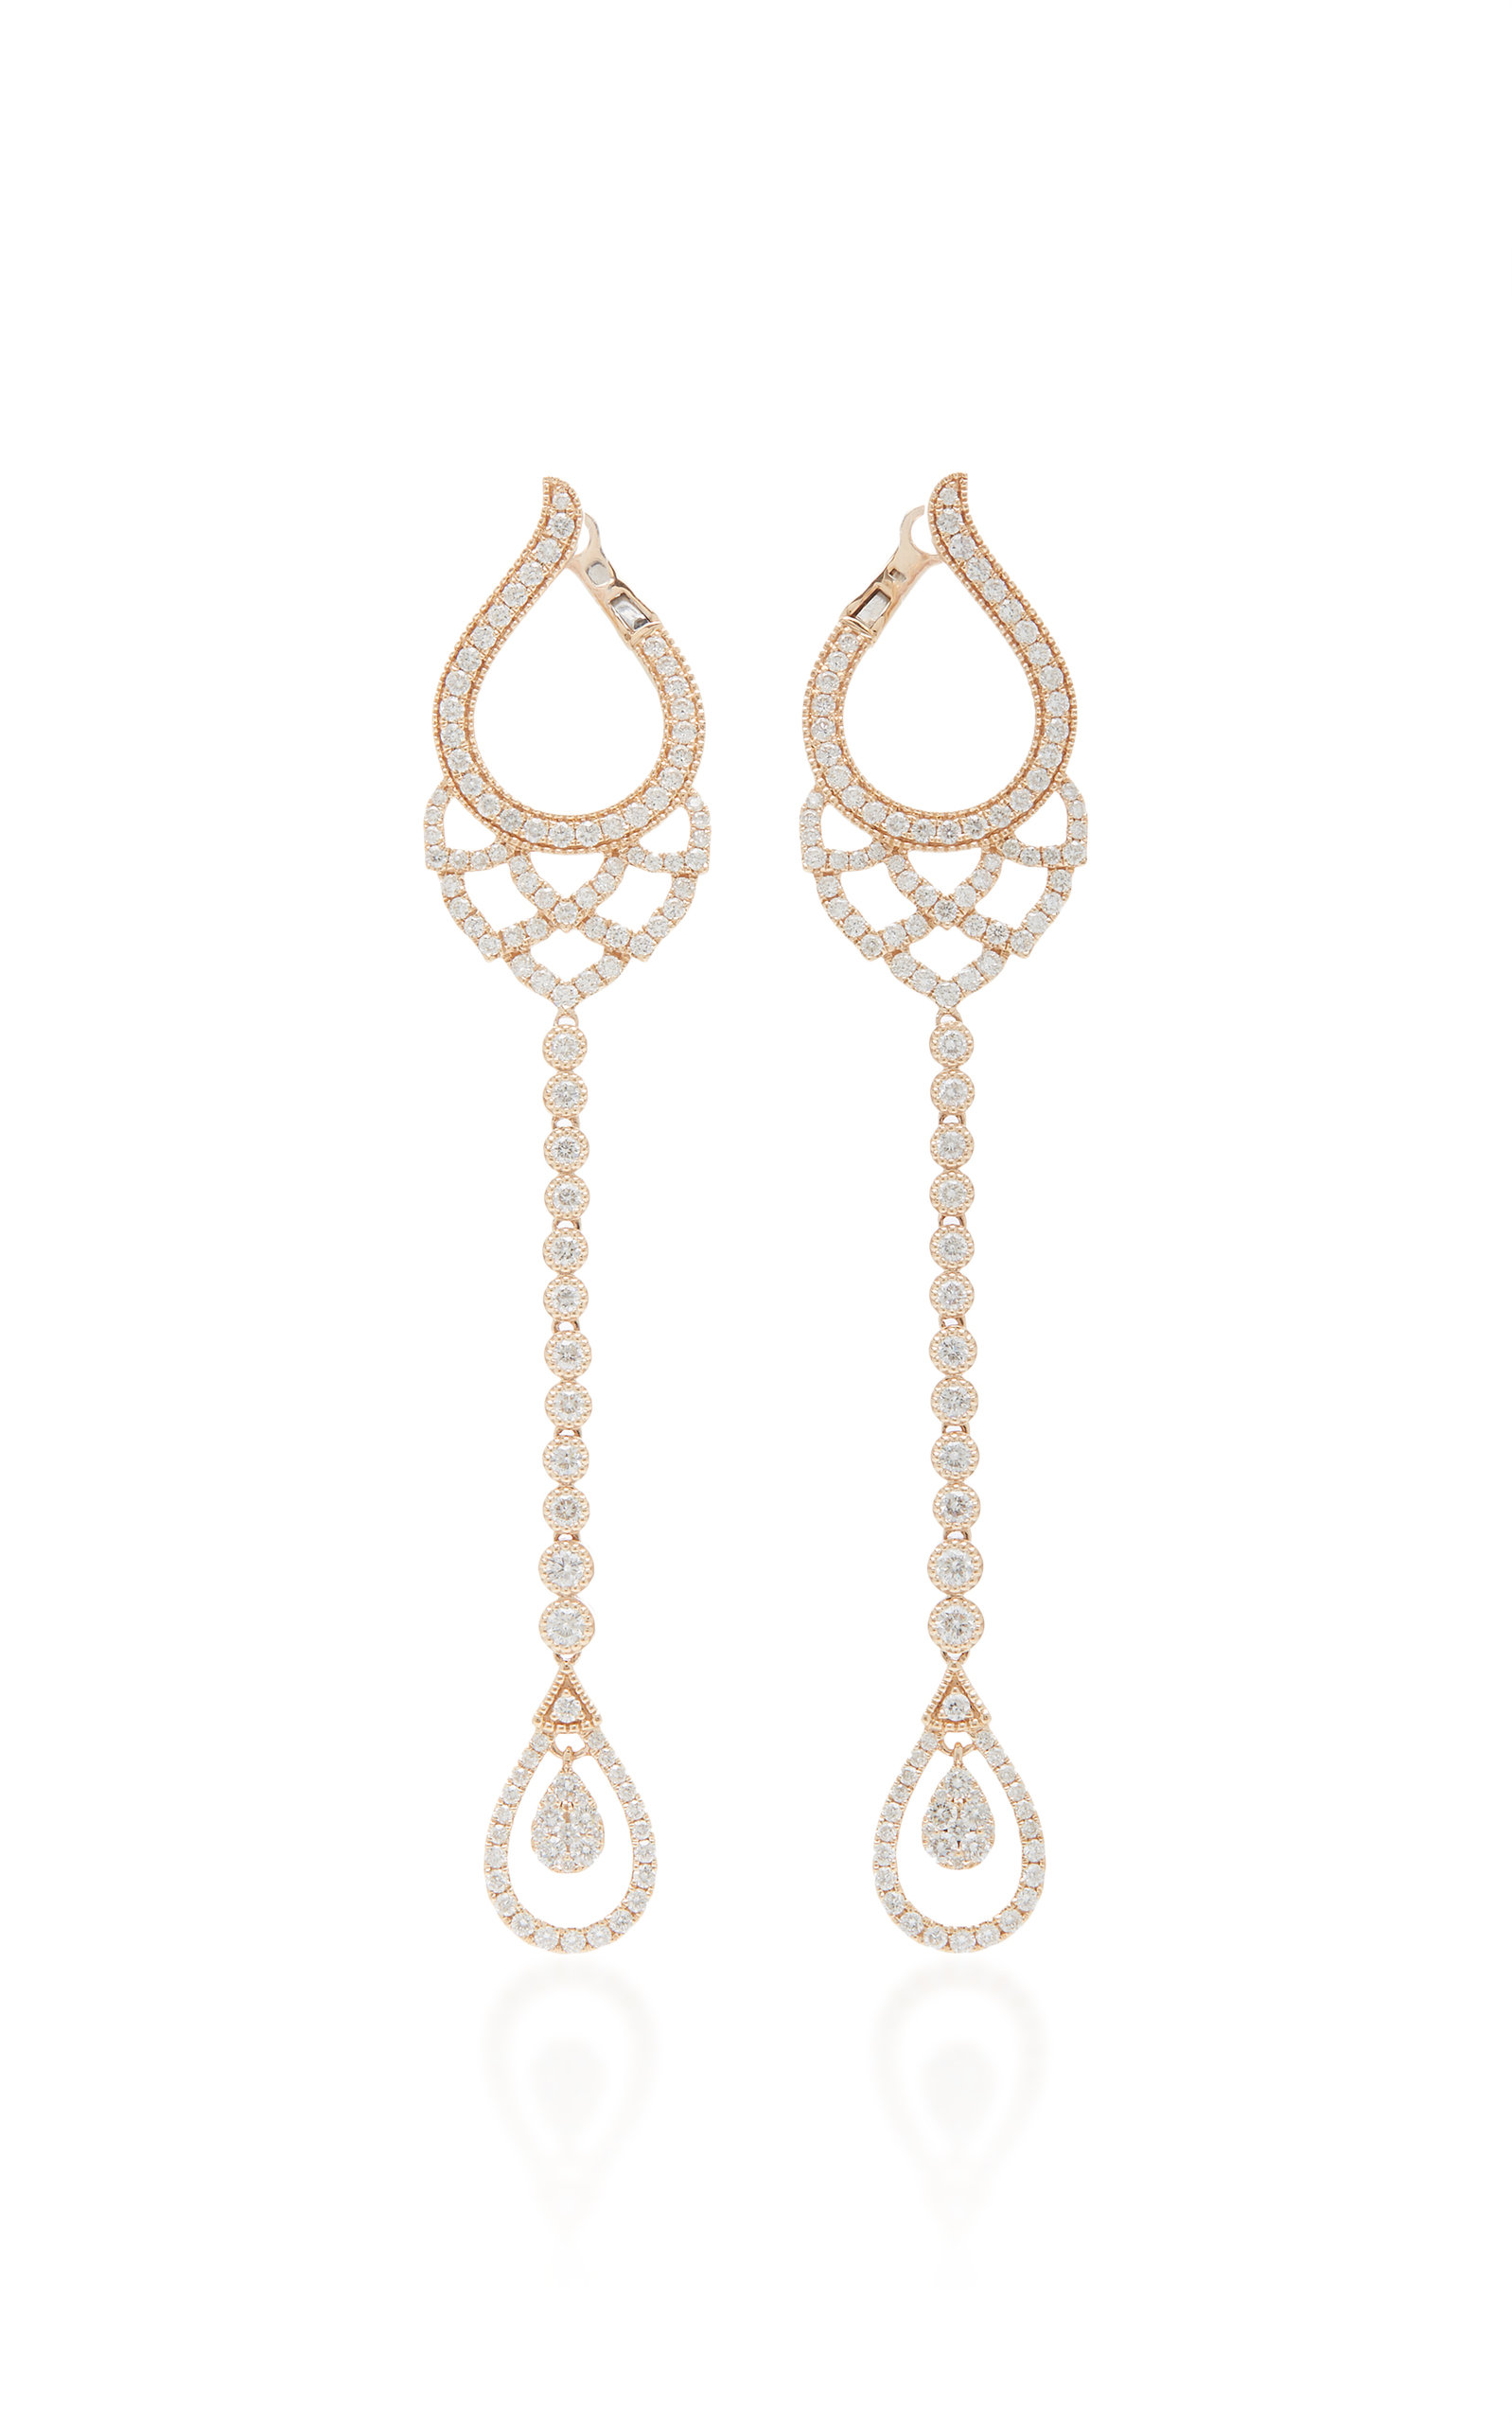 SARA WEINSTOCK BRUT BEZEL PETAL DROP EARRINGS